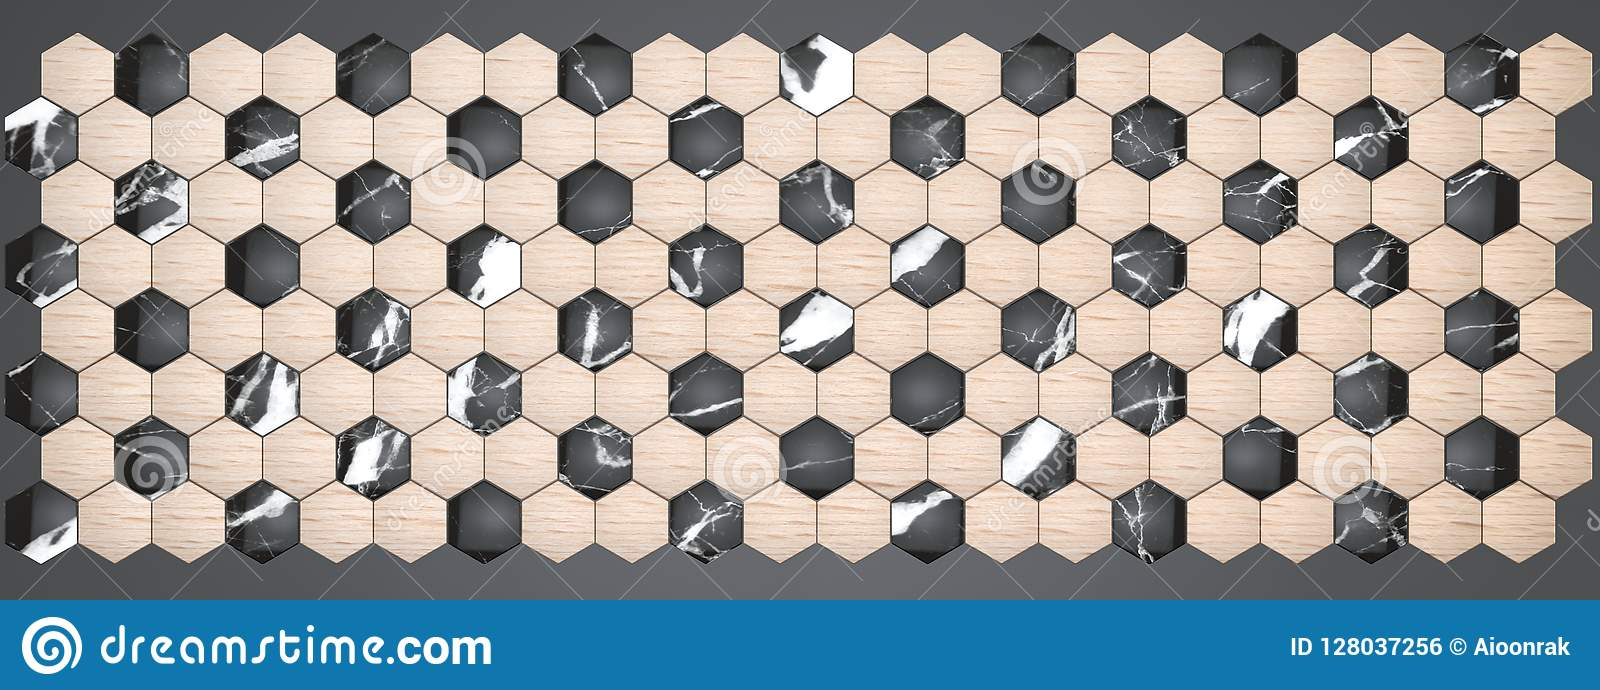 3d Rendering Of Hexagon Wall Panels Material Black Marble With Veneer Wood Beech For Your Project Or Interior Design Decorative Stock Illustration Illustration Of Design Beauty 128037256